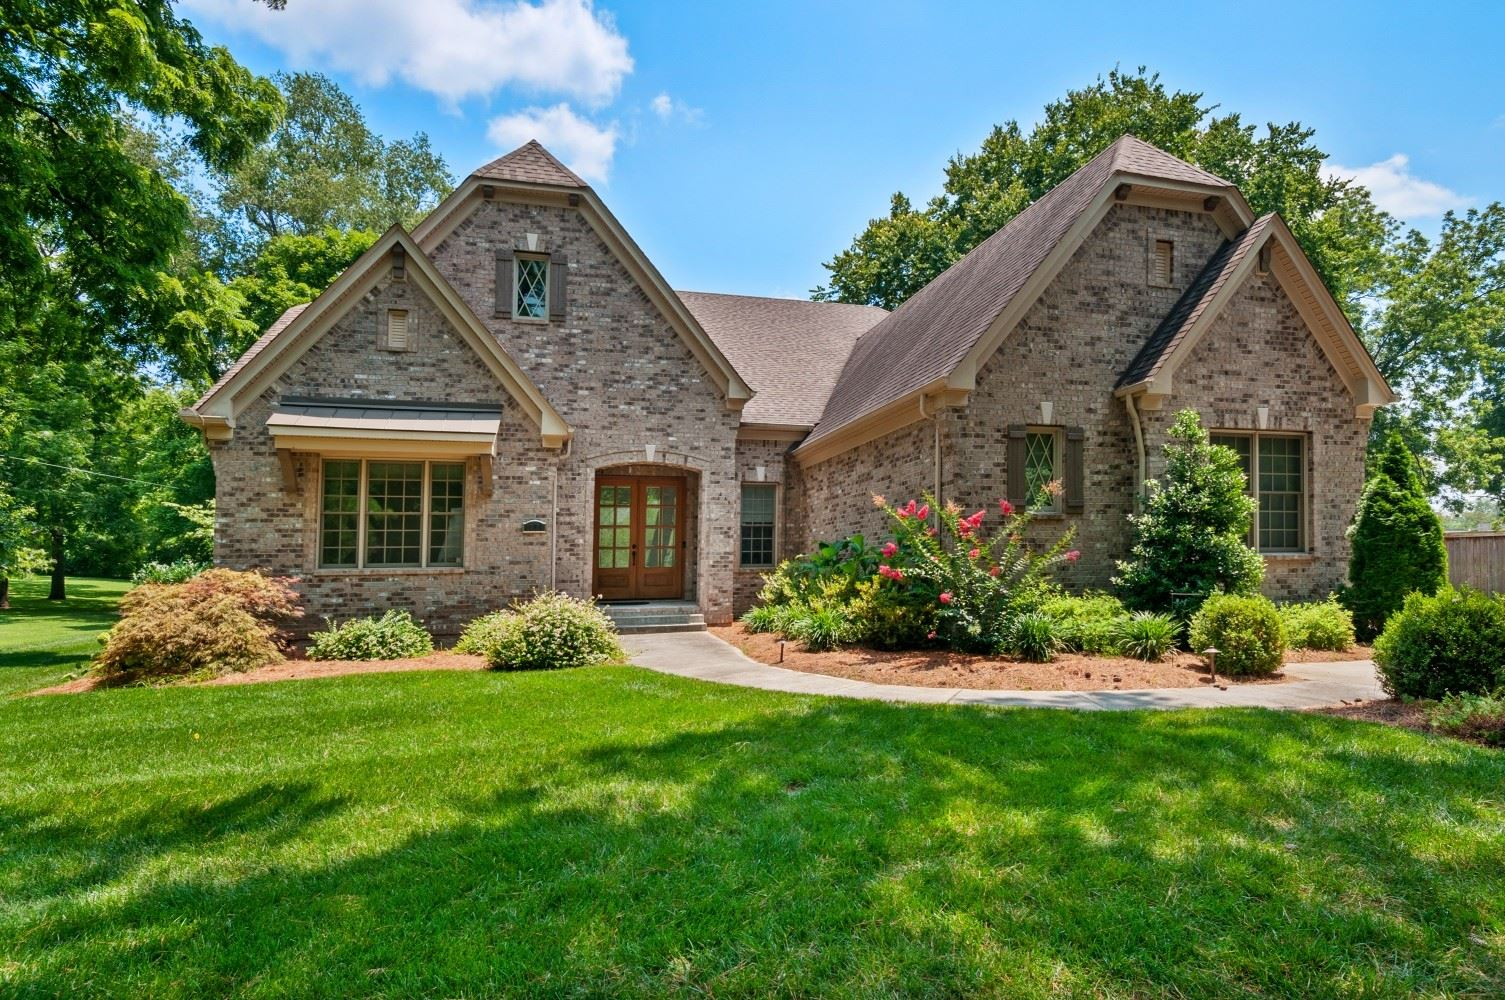 Photo of 1008 Clearview Dr, Nashville, TN 37205 (MLS # 2276123)